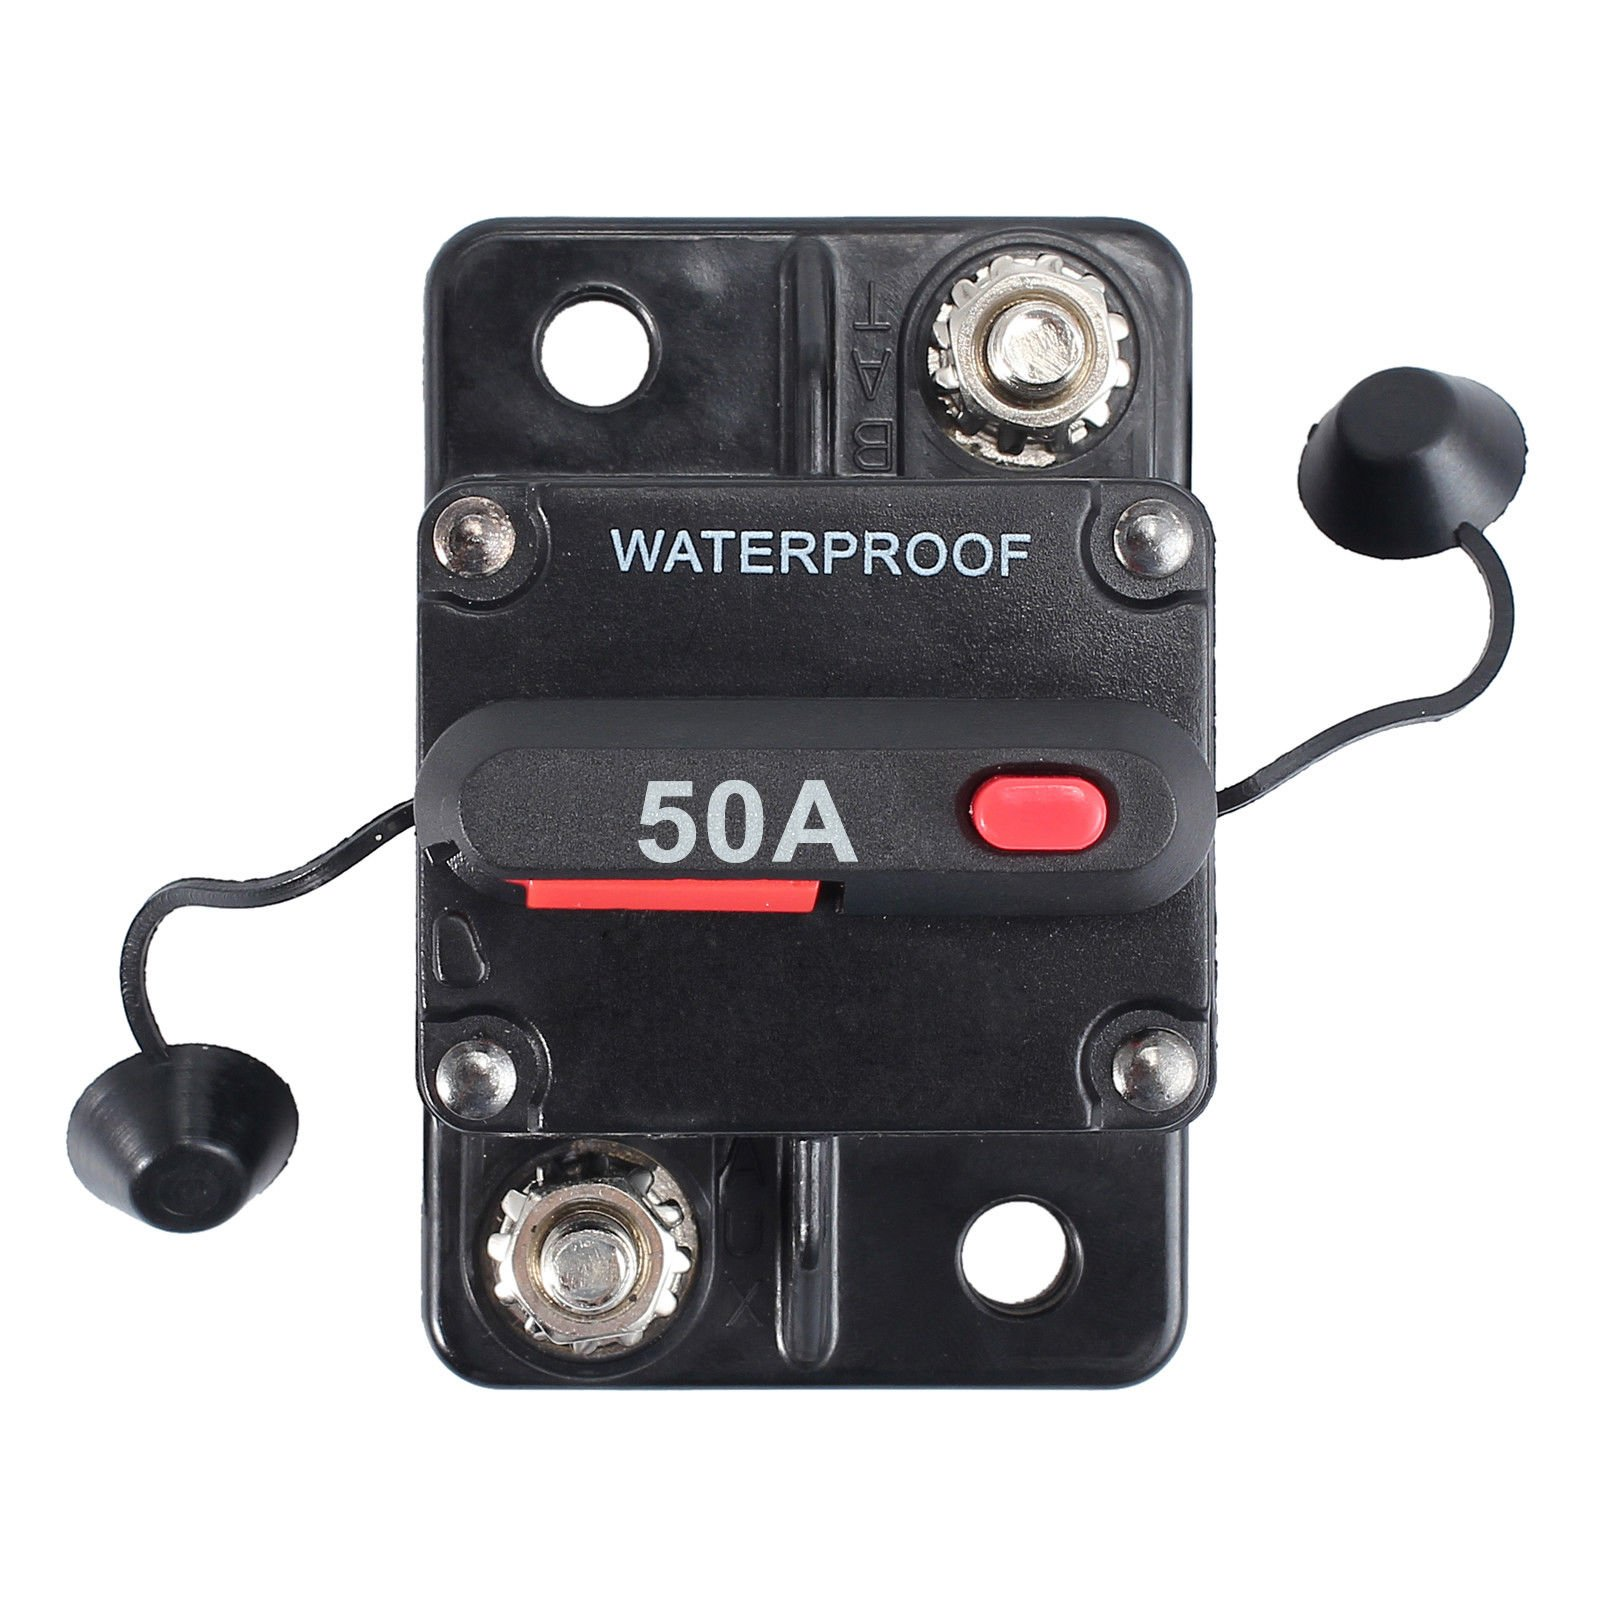 AUTOUTLET 50A AMP Circuit Breaker Dual Battery IP67 Waterproof 12V 24V Fuse Reset Compliance SAE J1625, SAE J1171, UL1500 Ignition Protect